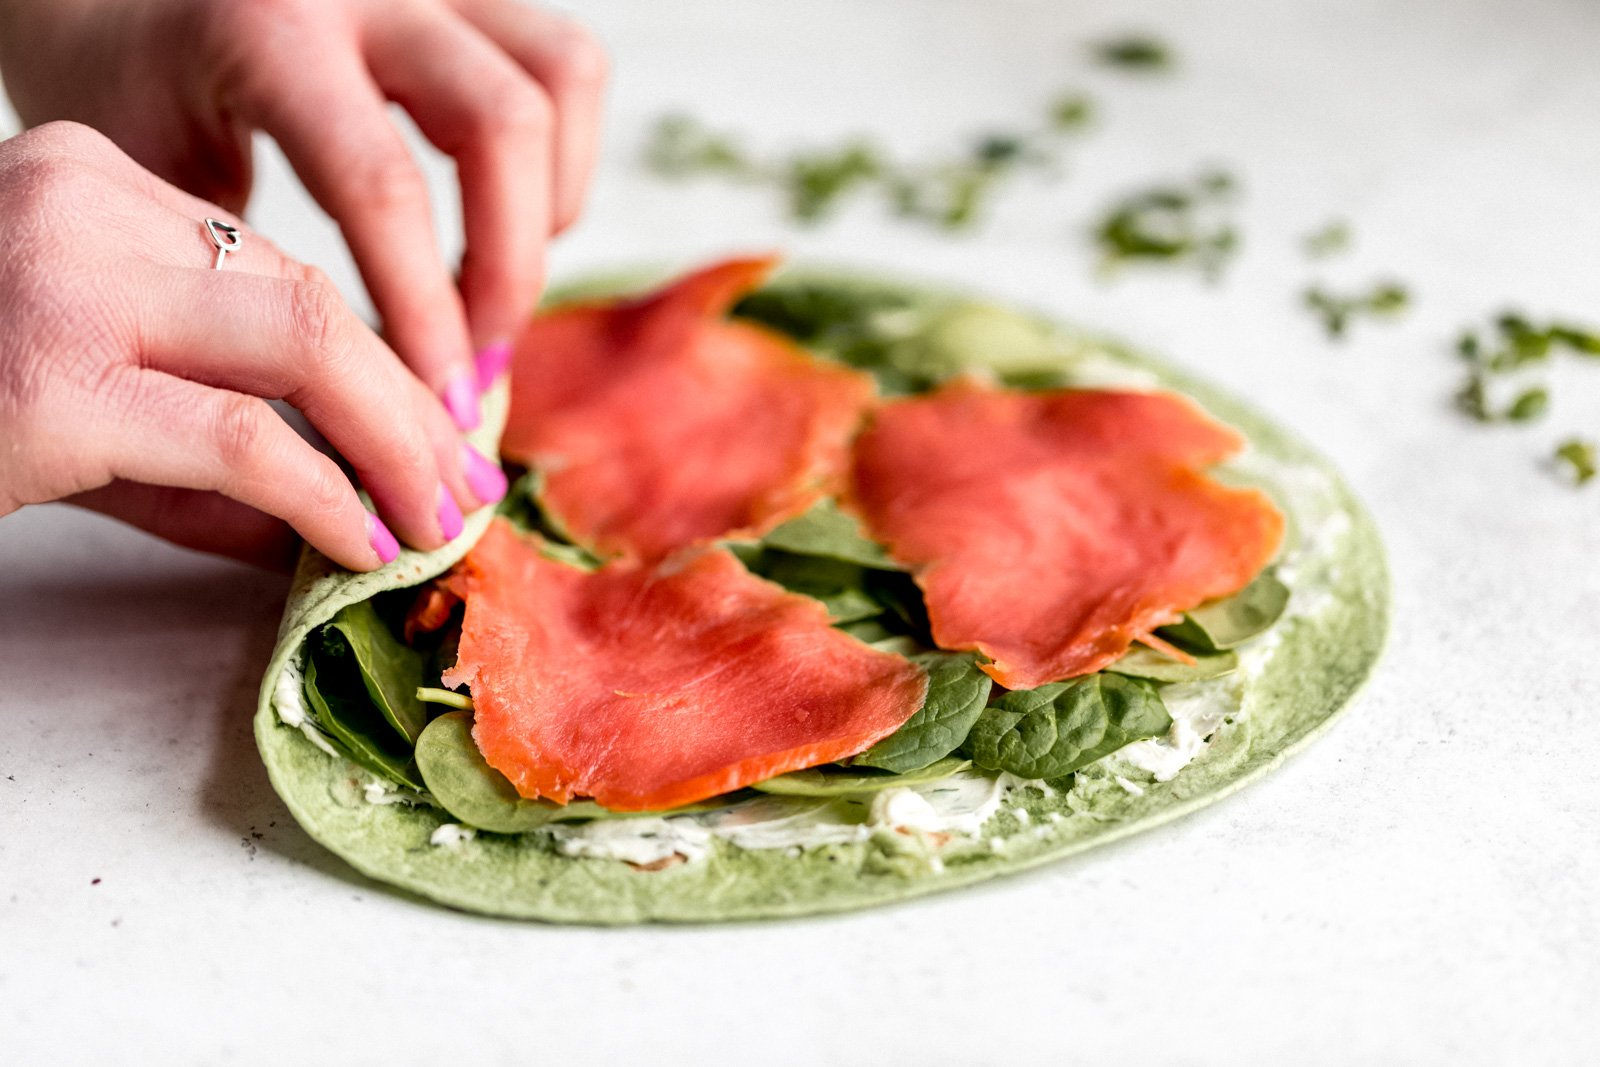 hands rolling up a spinach tortilla filled with ingredients to make smoked salmon pinwheels